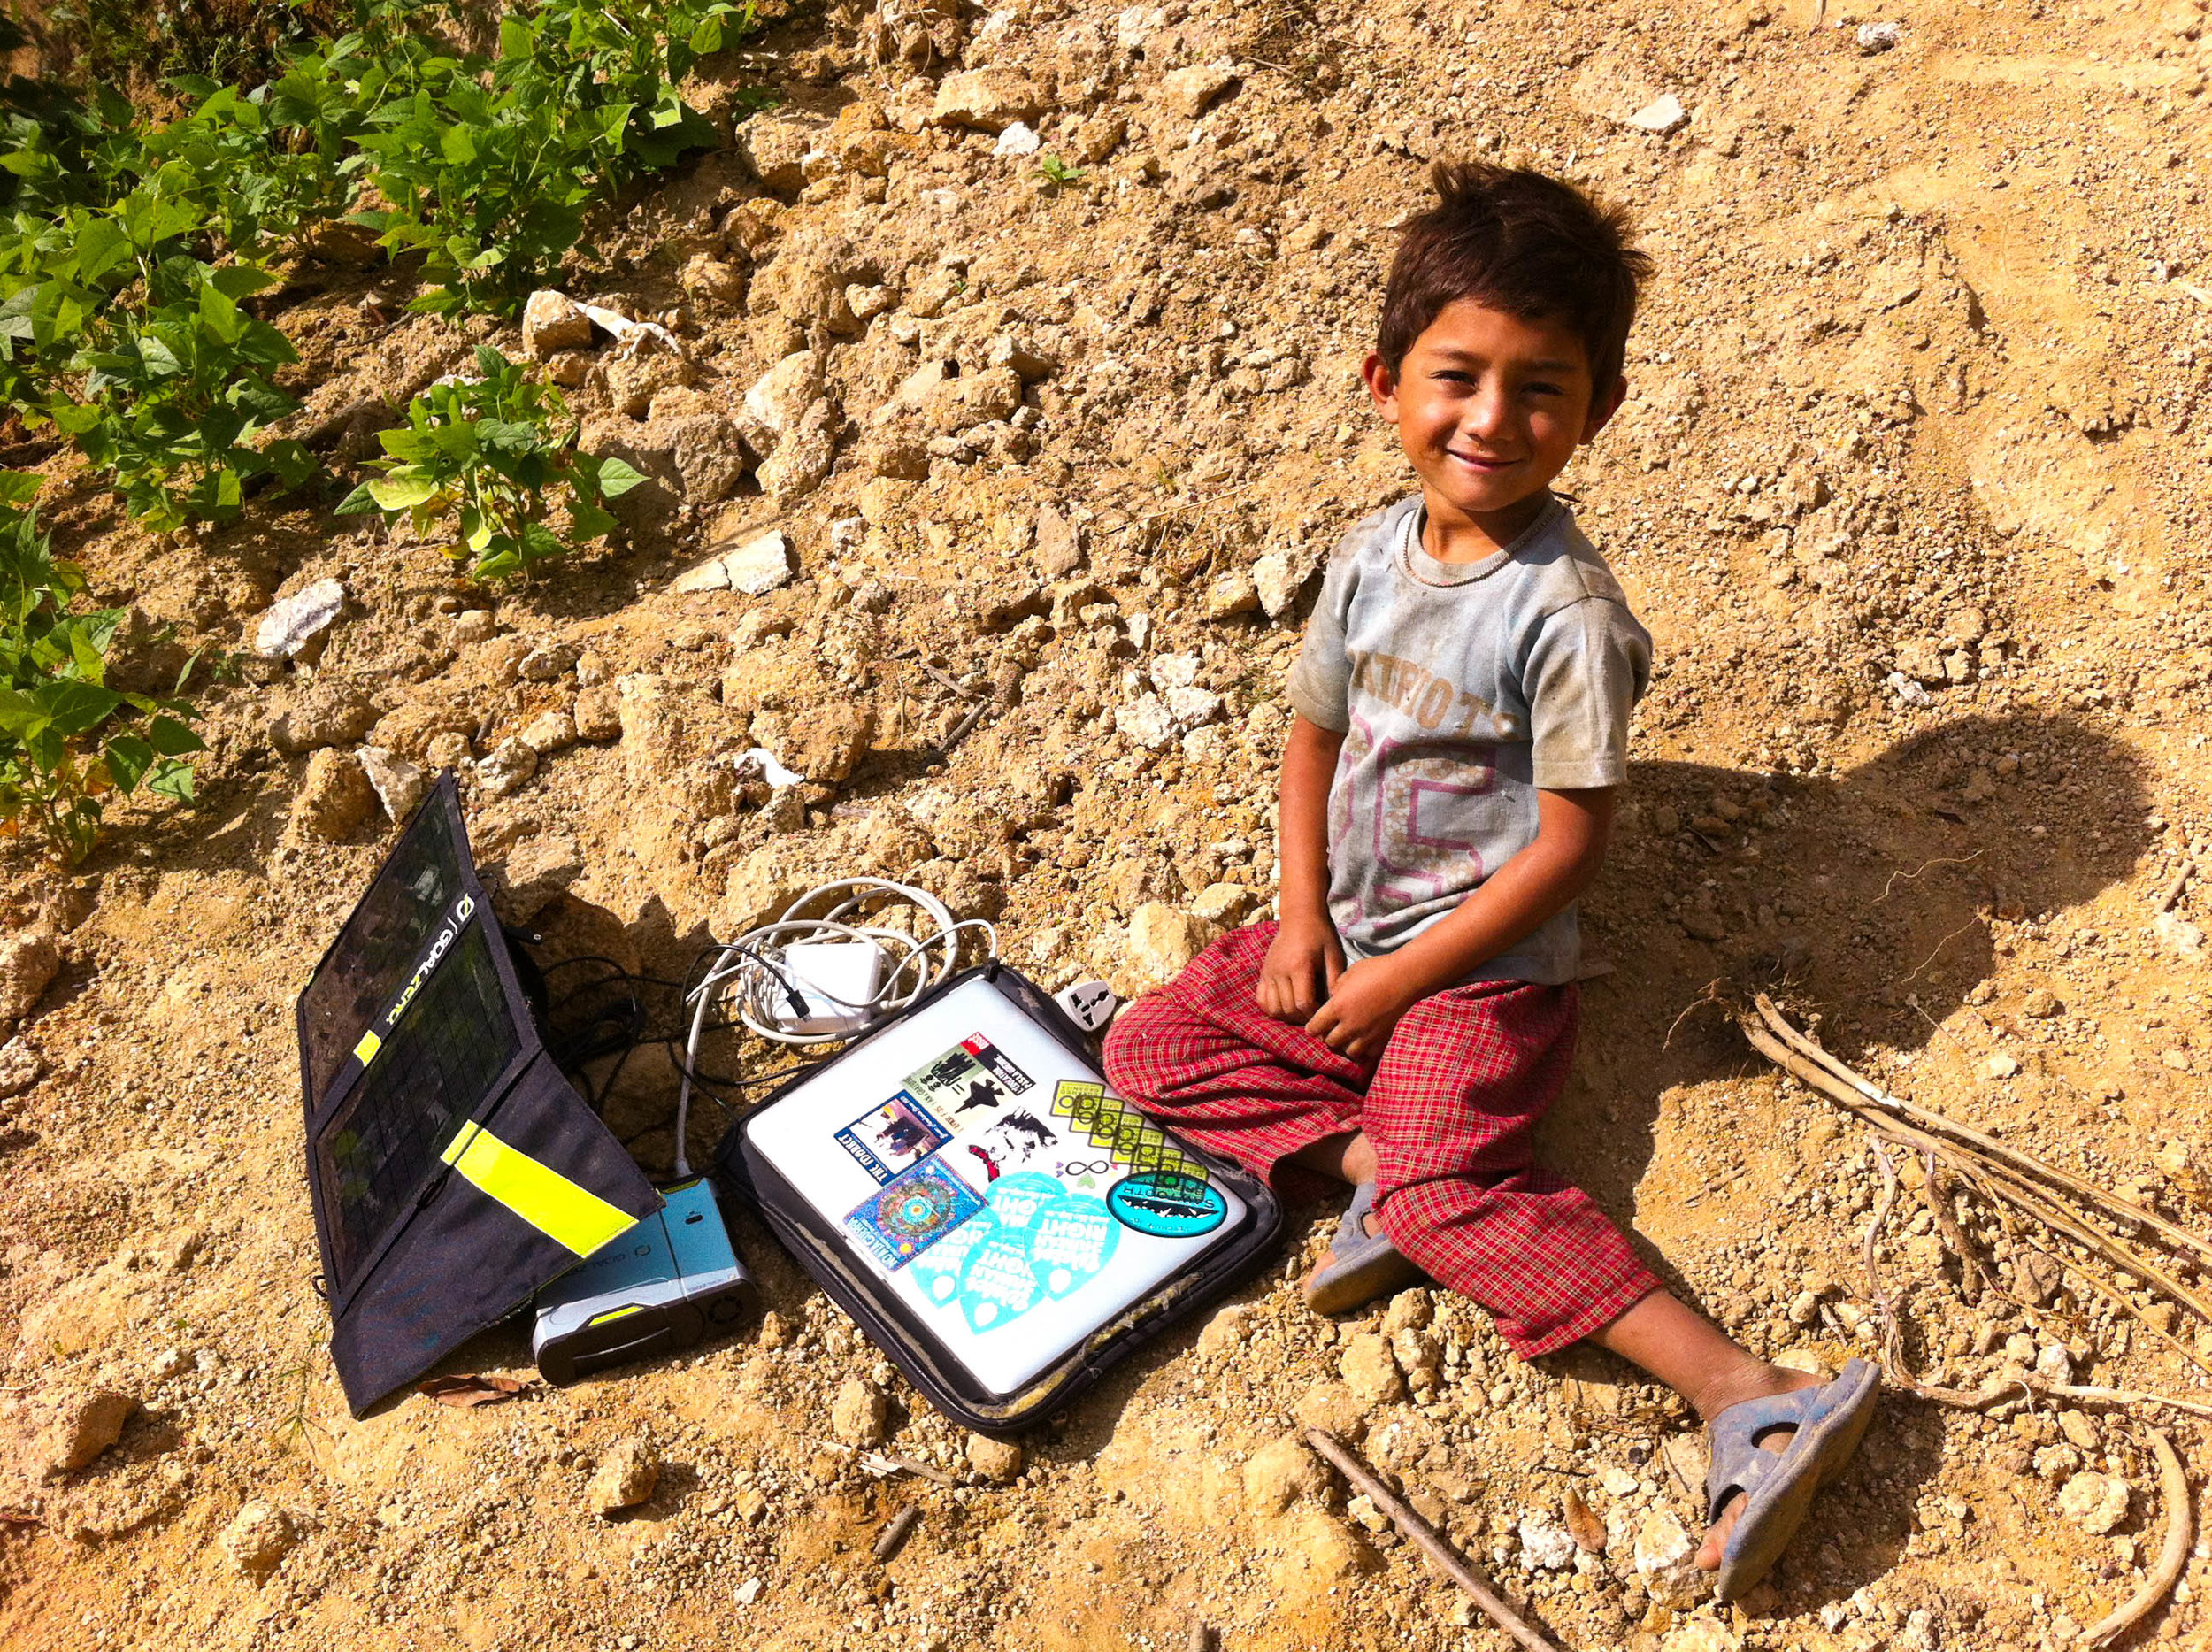 Sandesh, 5, sits with a Good Earth Volunteer's solar charger and laptop. He and his sister Nambrita enjoyed their first week time hosting volunteers thoroughly and will be attending the Agara Earthbag school upon its completion.